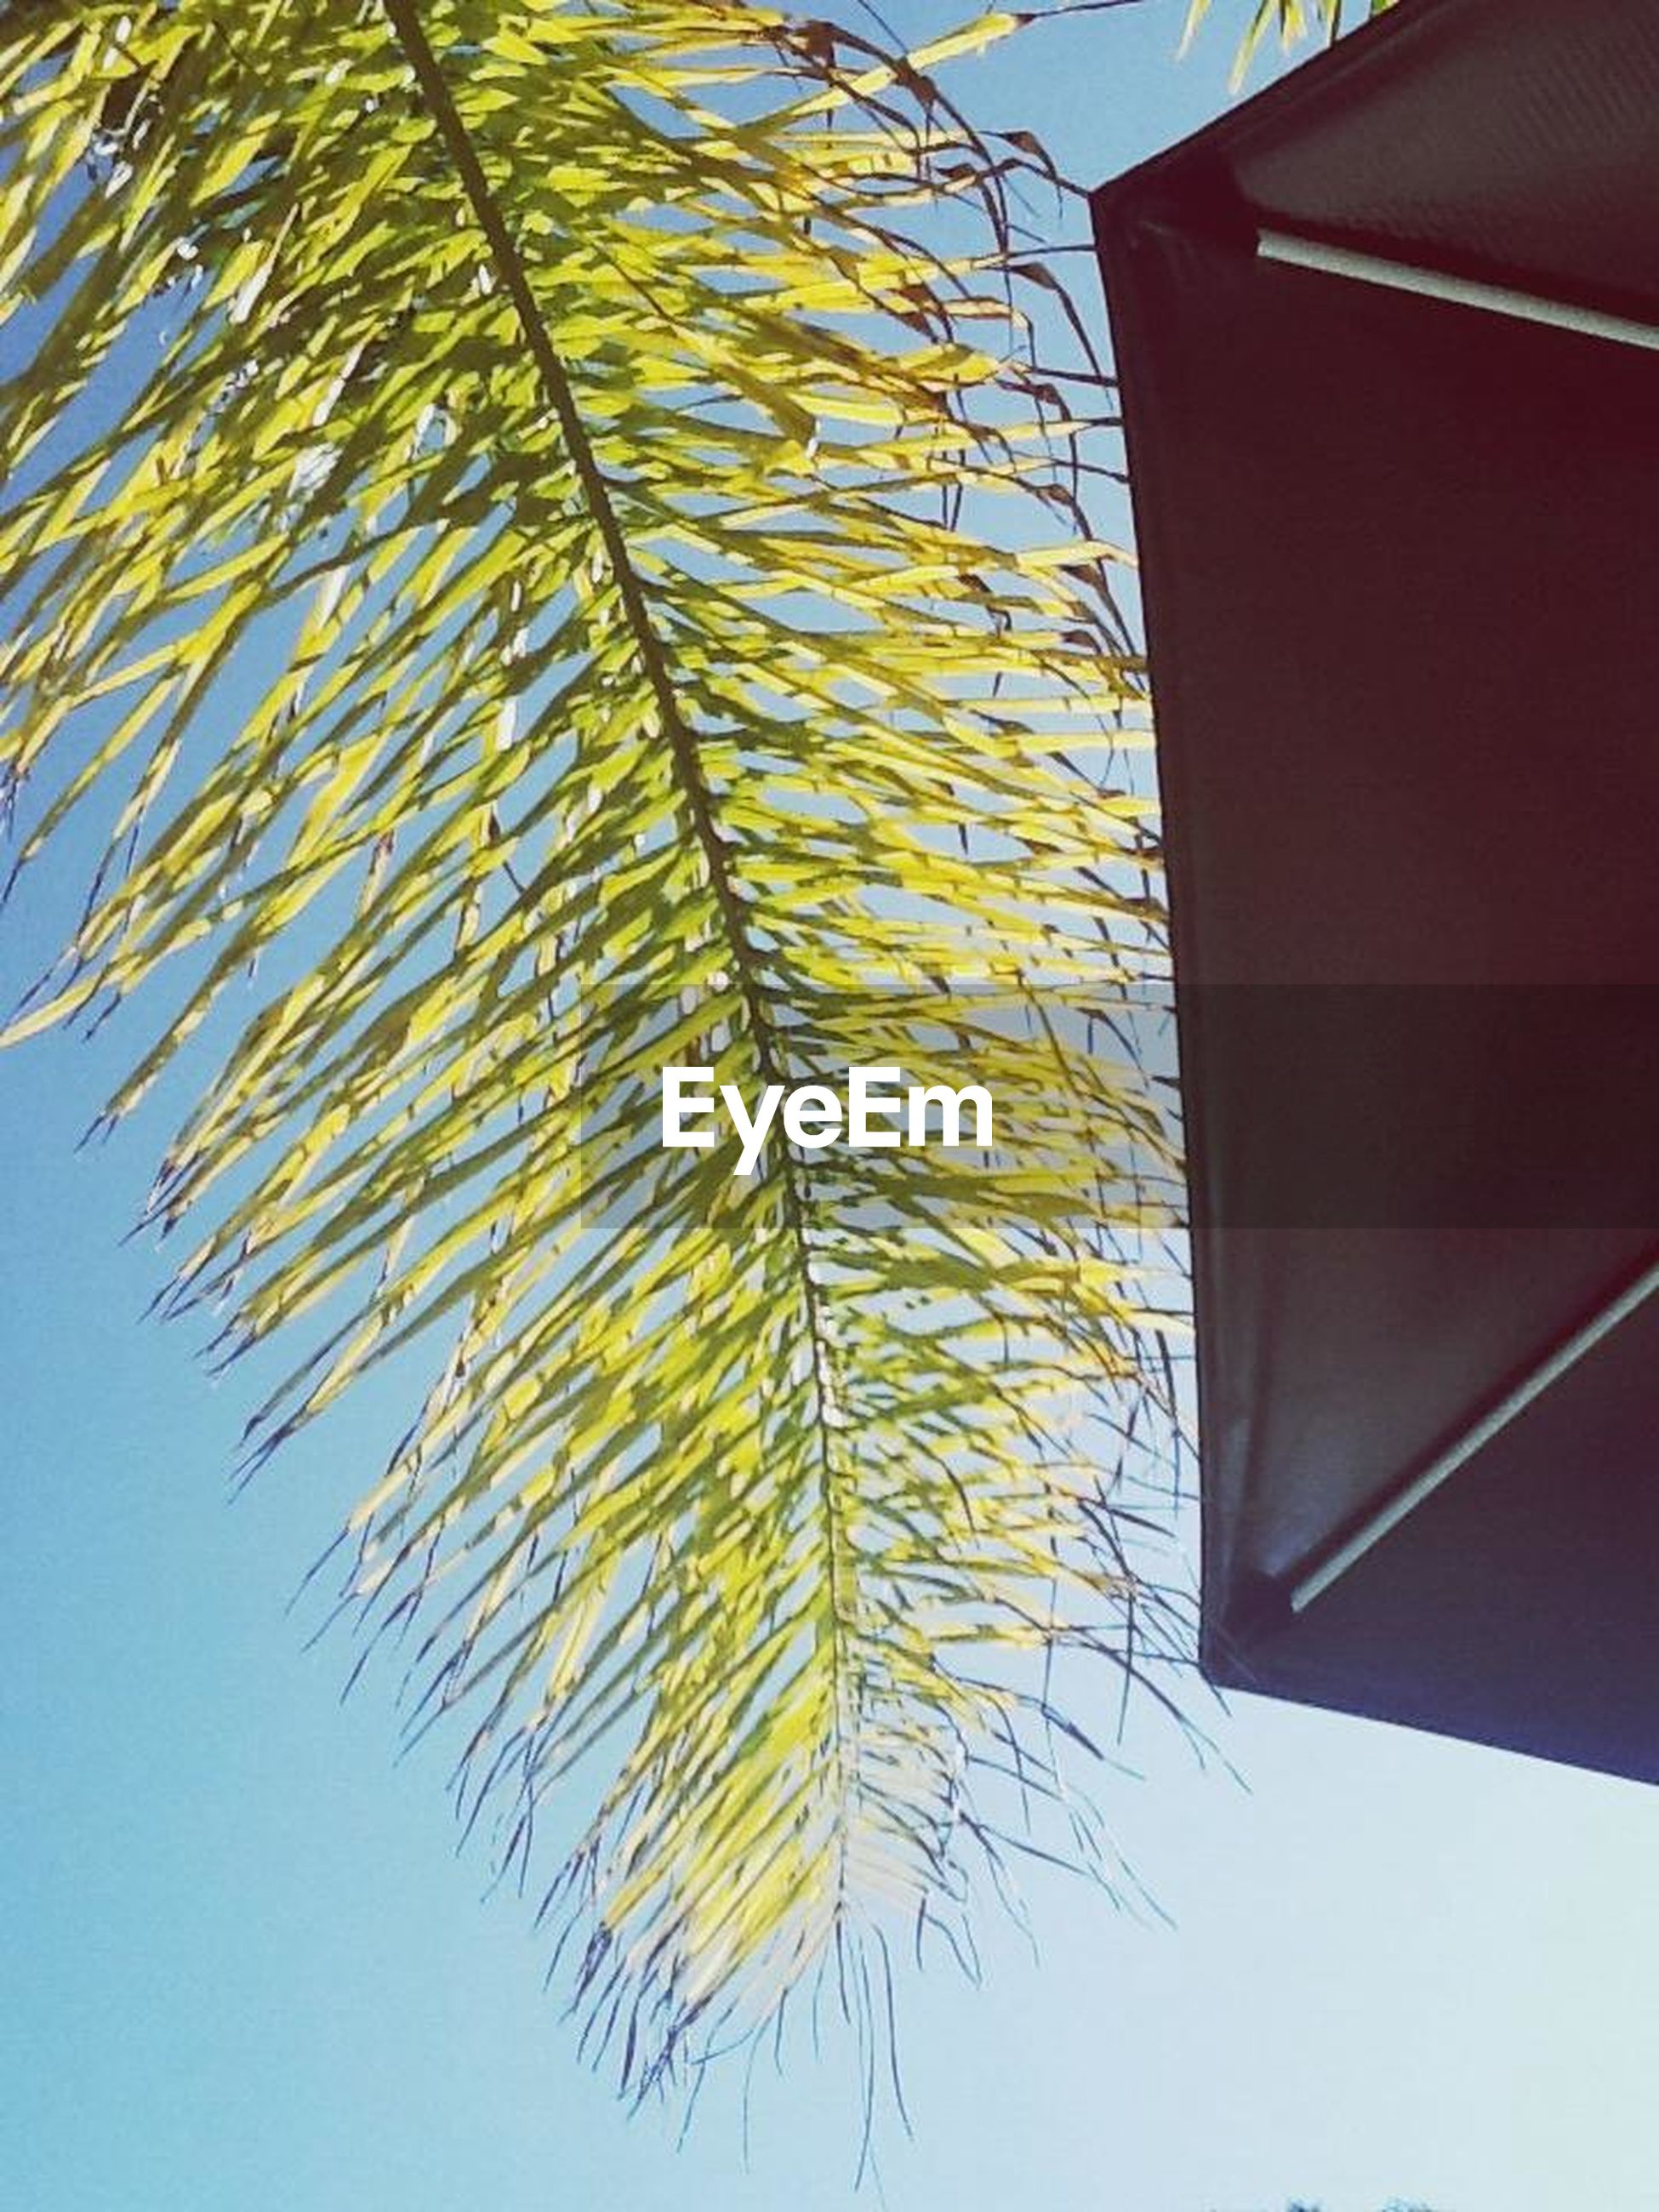 low angle view, architecture, built structure, building exterior, clear sky, yellow, no people, day, pattern, sunlight, directly below, sky, decoration, hanging, multi colored, building, outdoors, blue, leaf, house